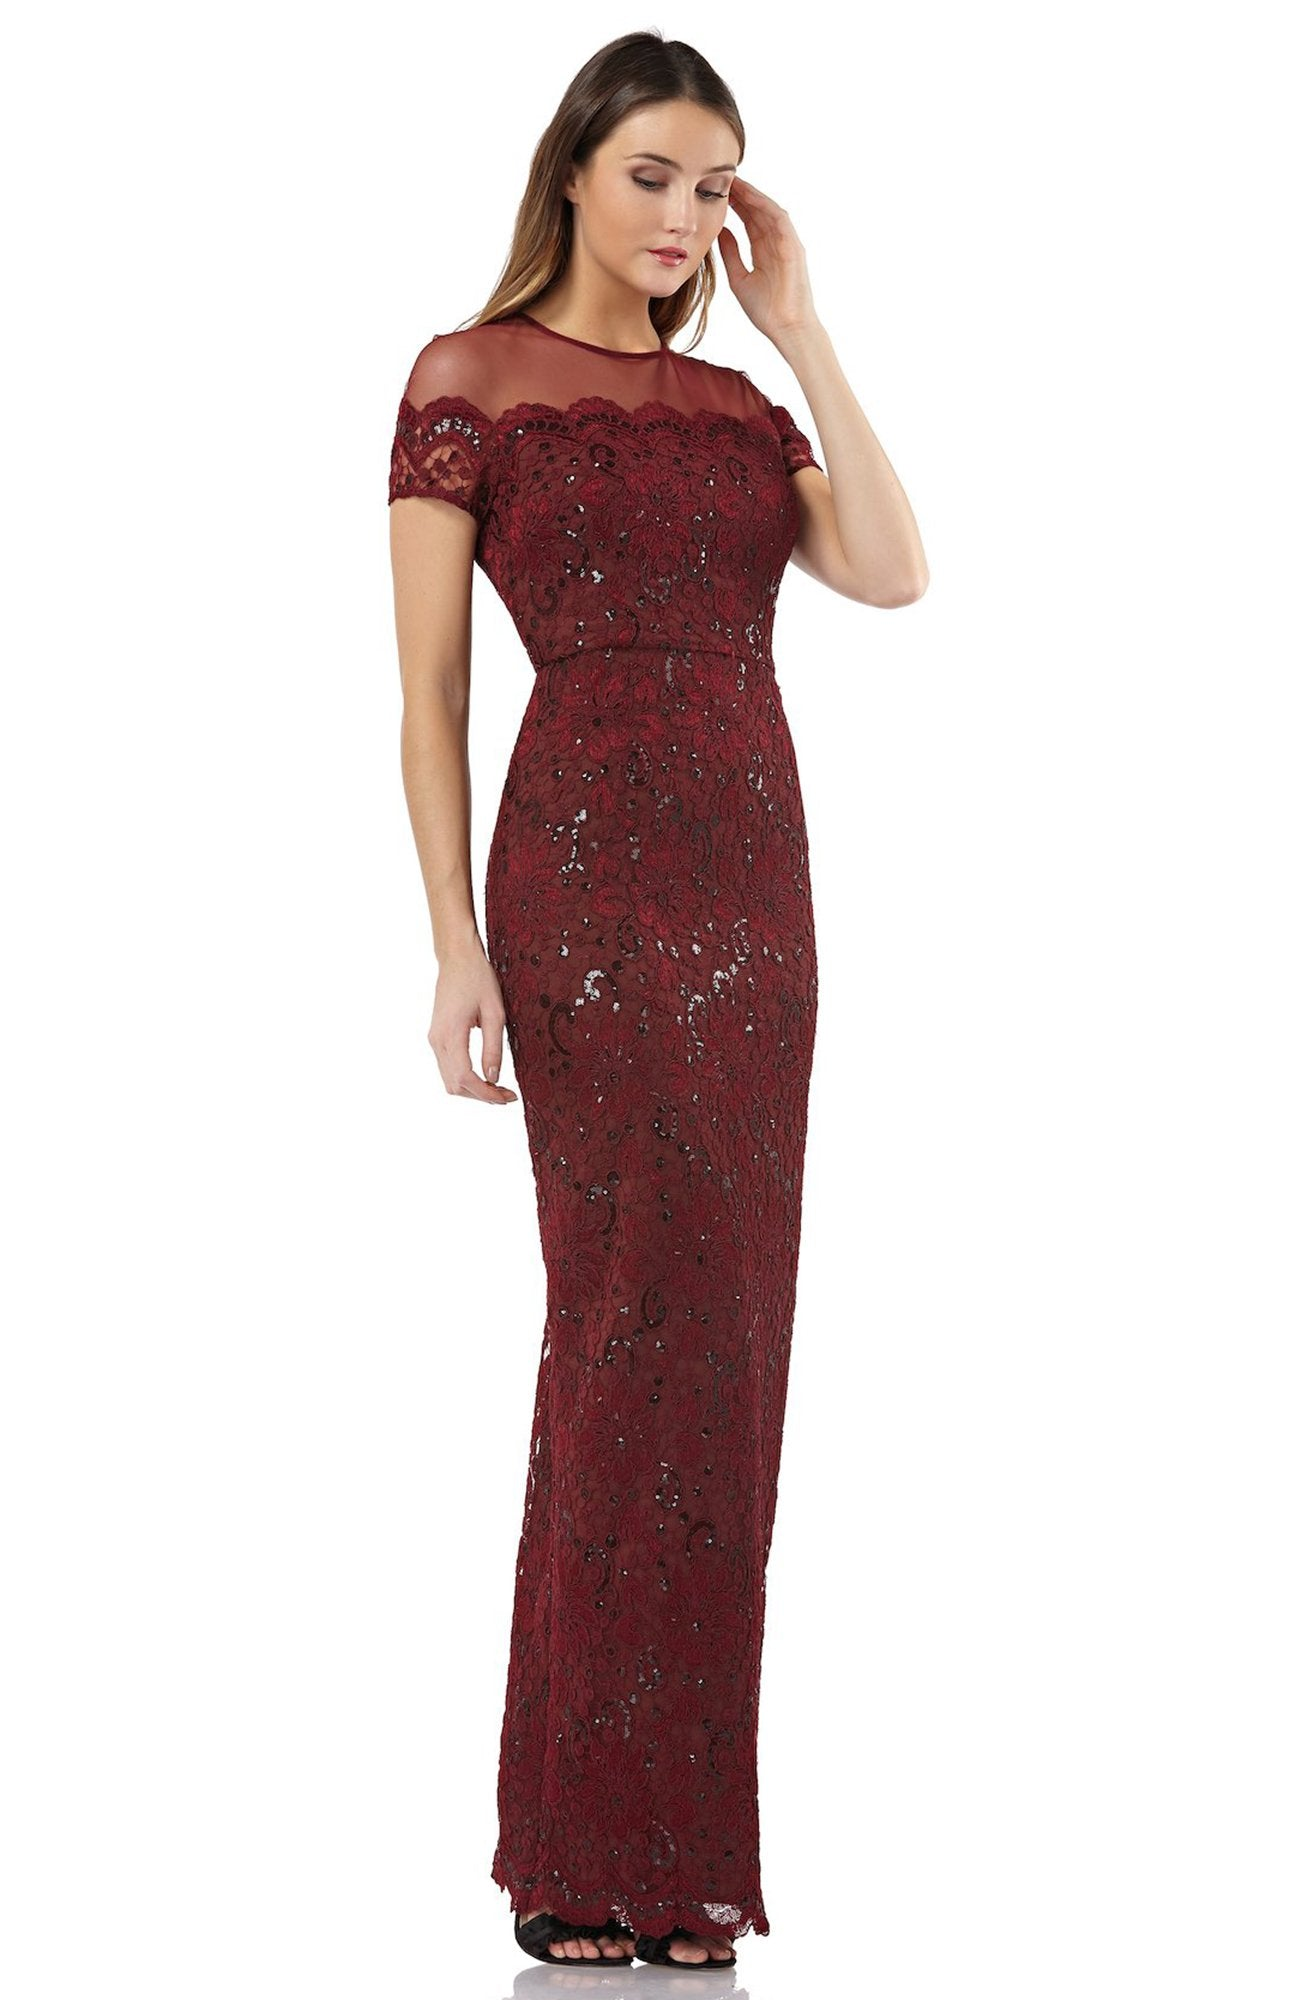 JS Collections - 866648 Illusion Floral Lace Embroidered Mesh Dress In Red